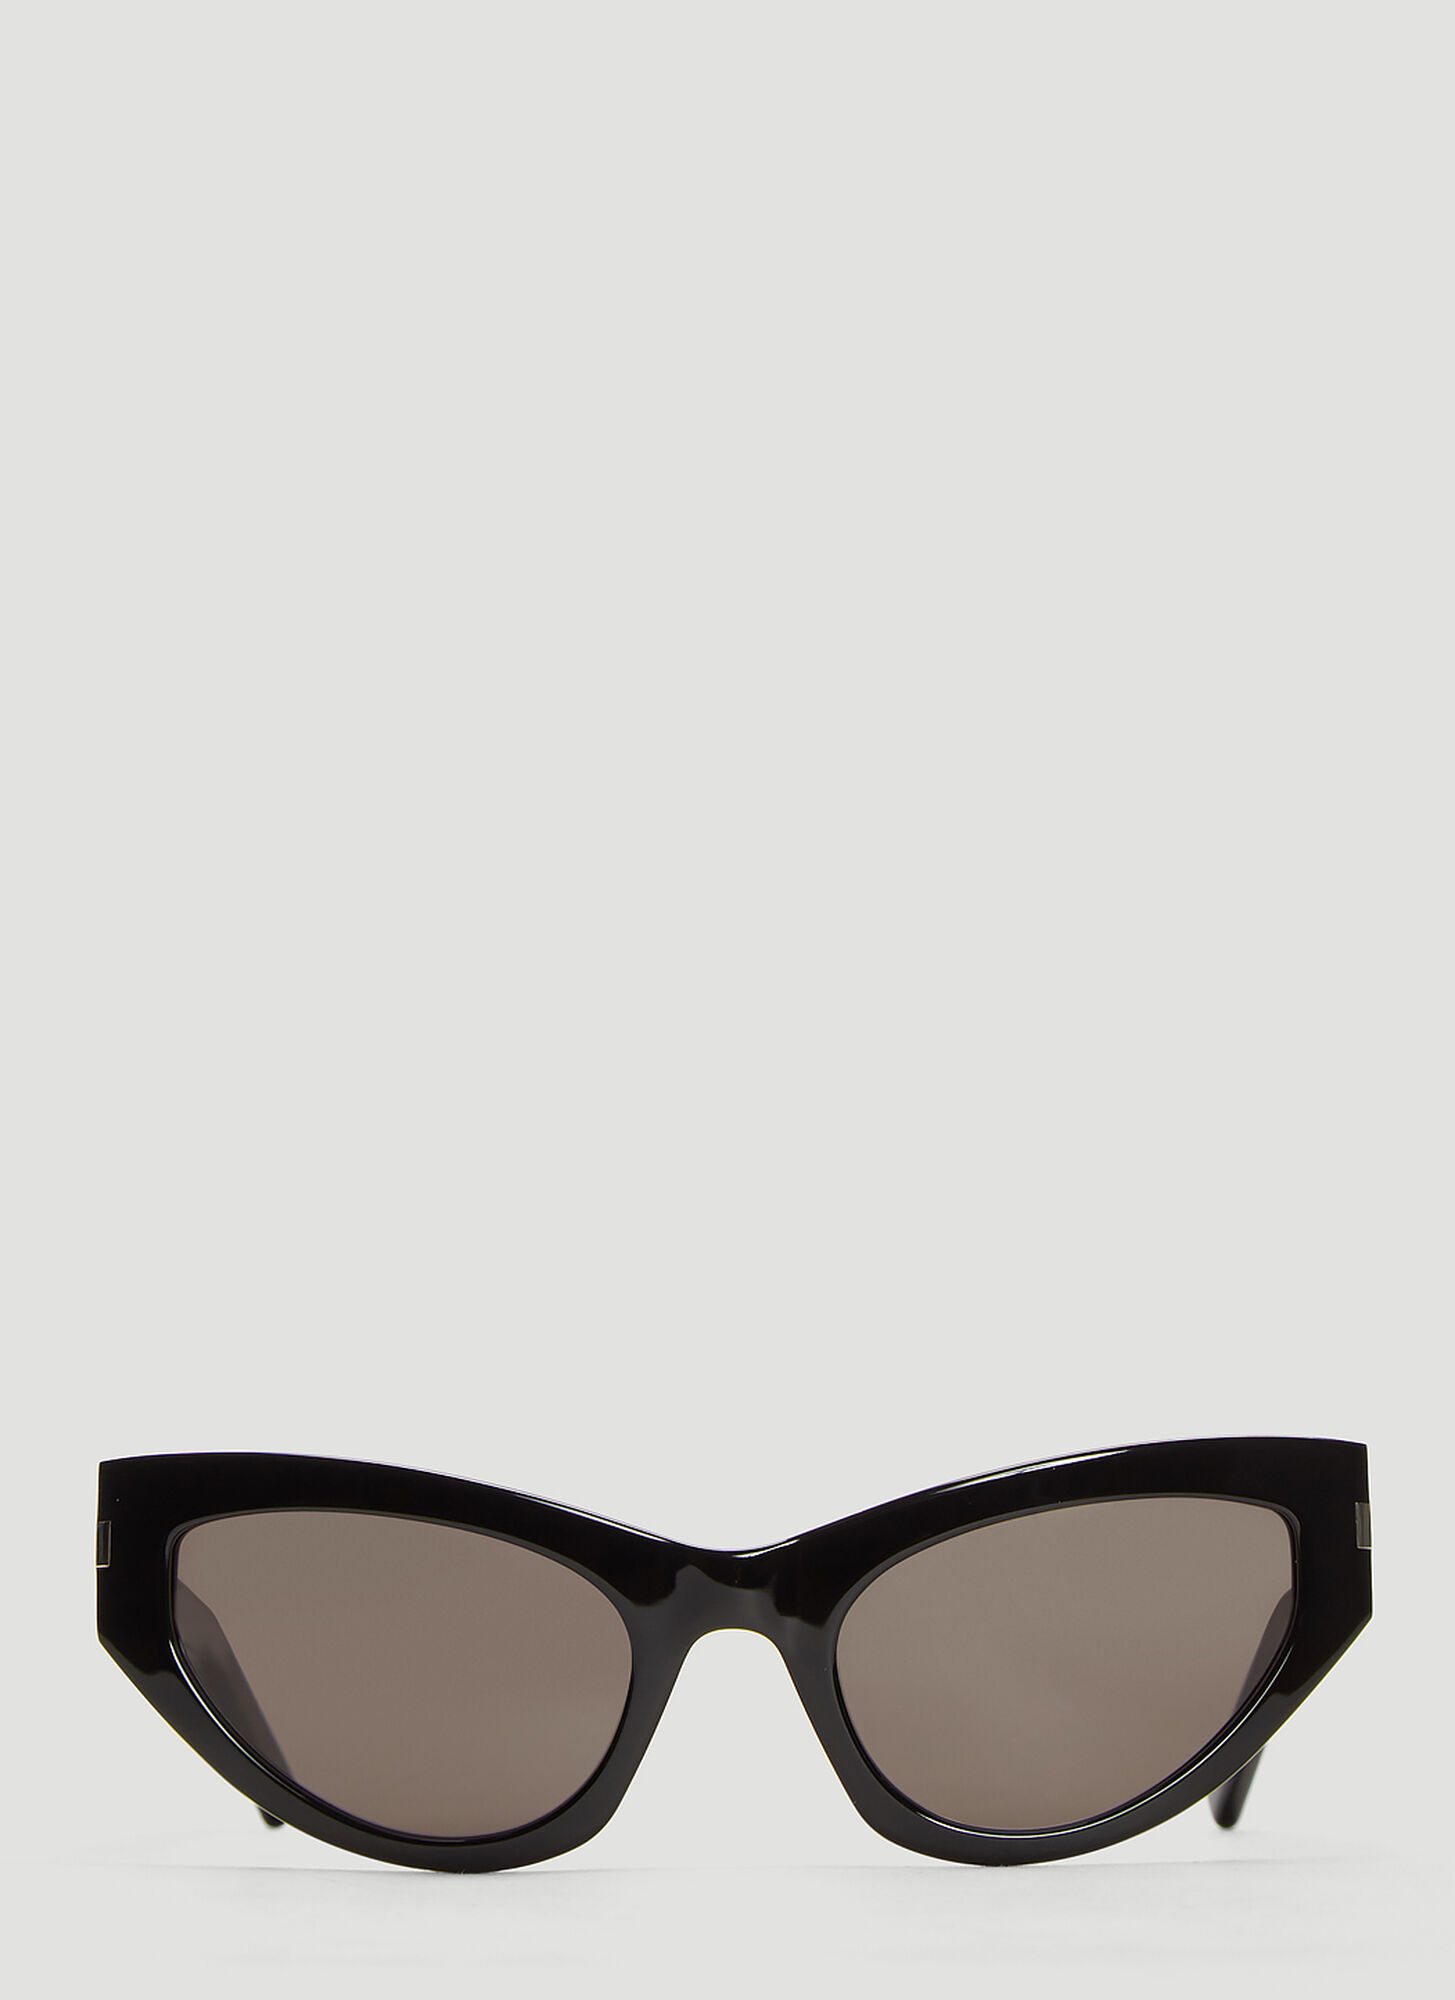 Saint Laurent New Wave SL 215 Grace Sunglasses in Black